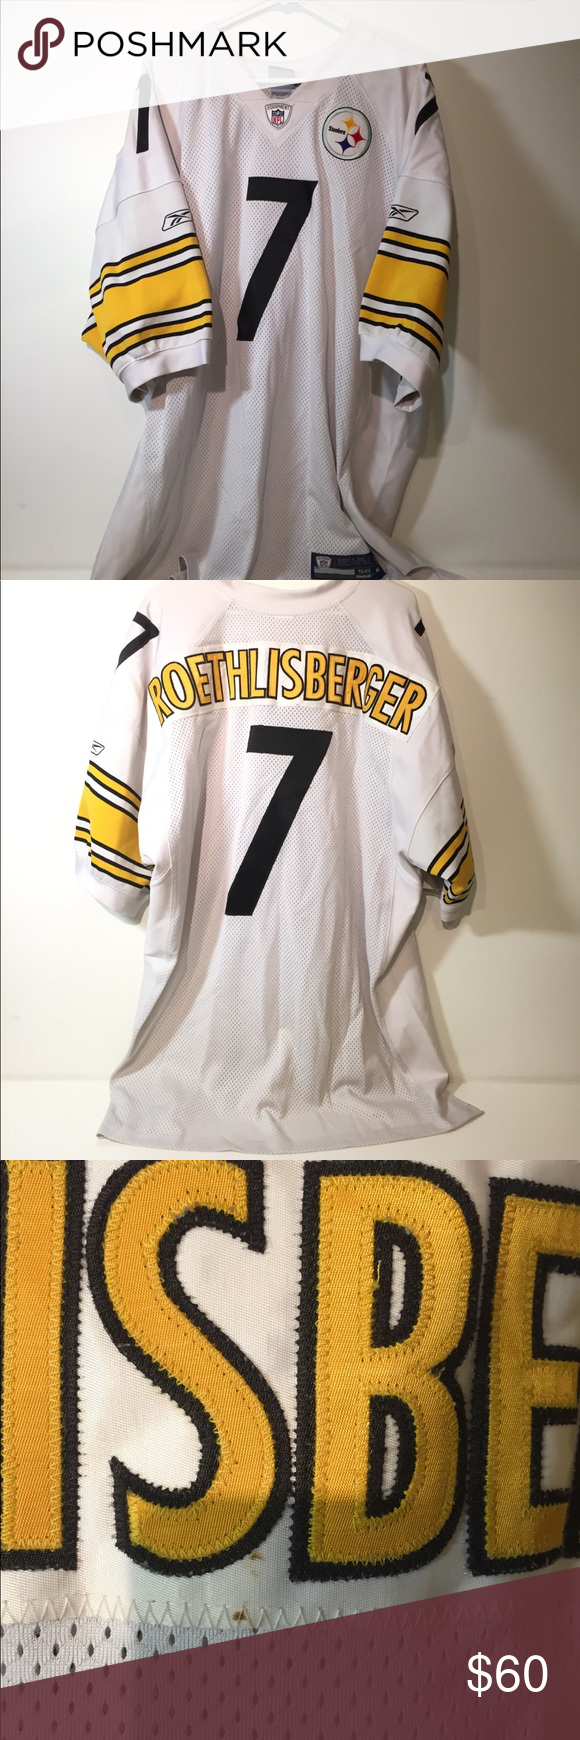 brand new 4204f 0374e Authentic NFL Equipment Ben Roethlisberger Jersey Like the ...